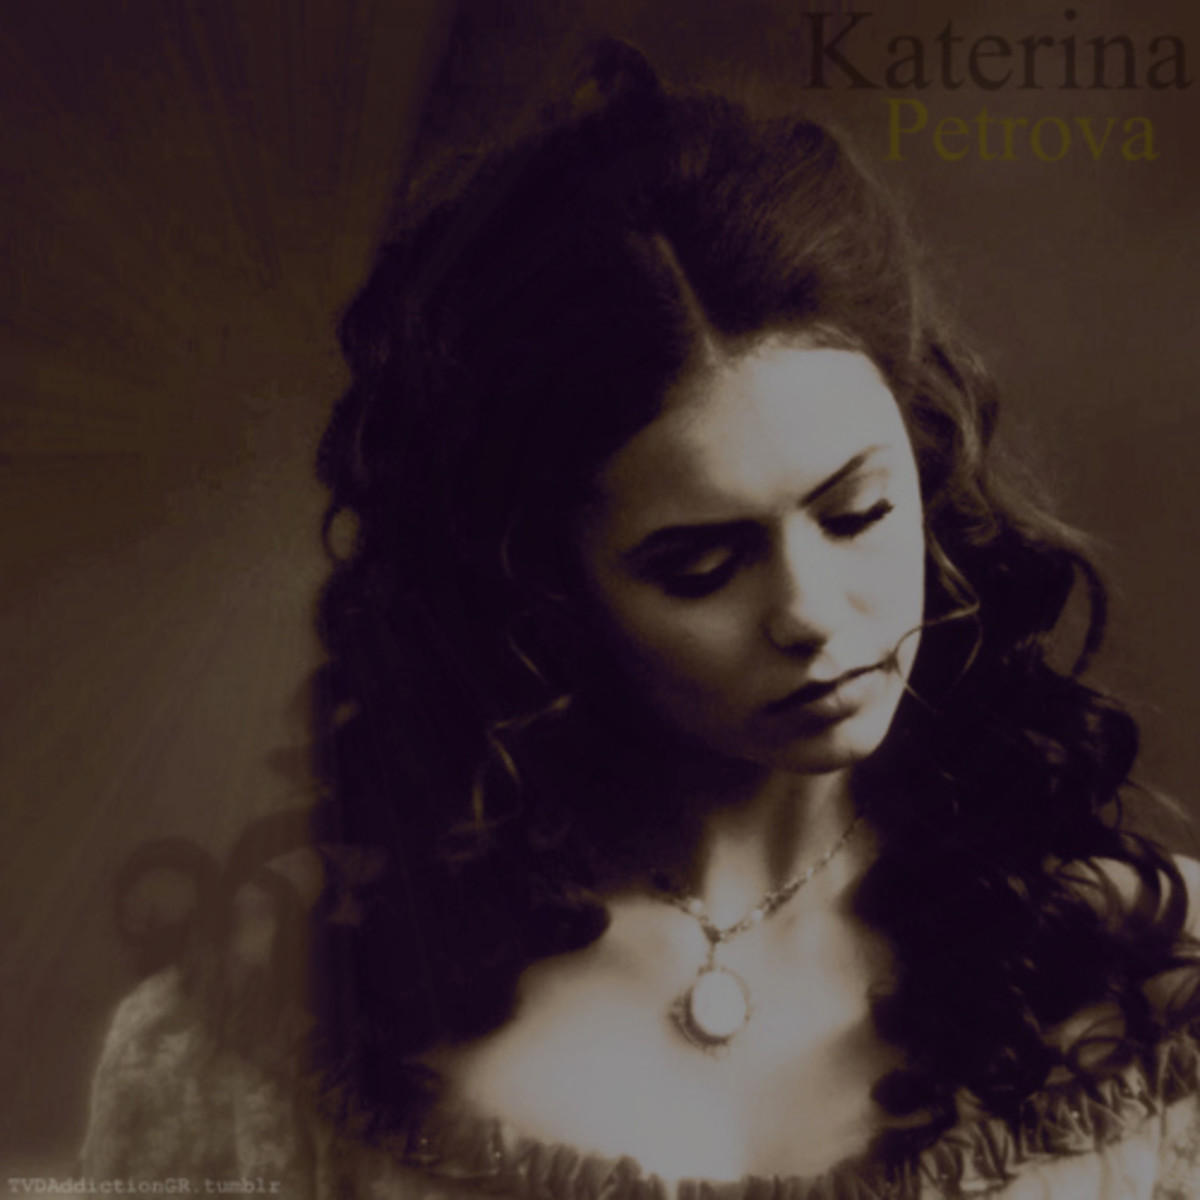 Old Picture of Katherine Petrova